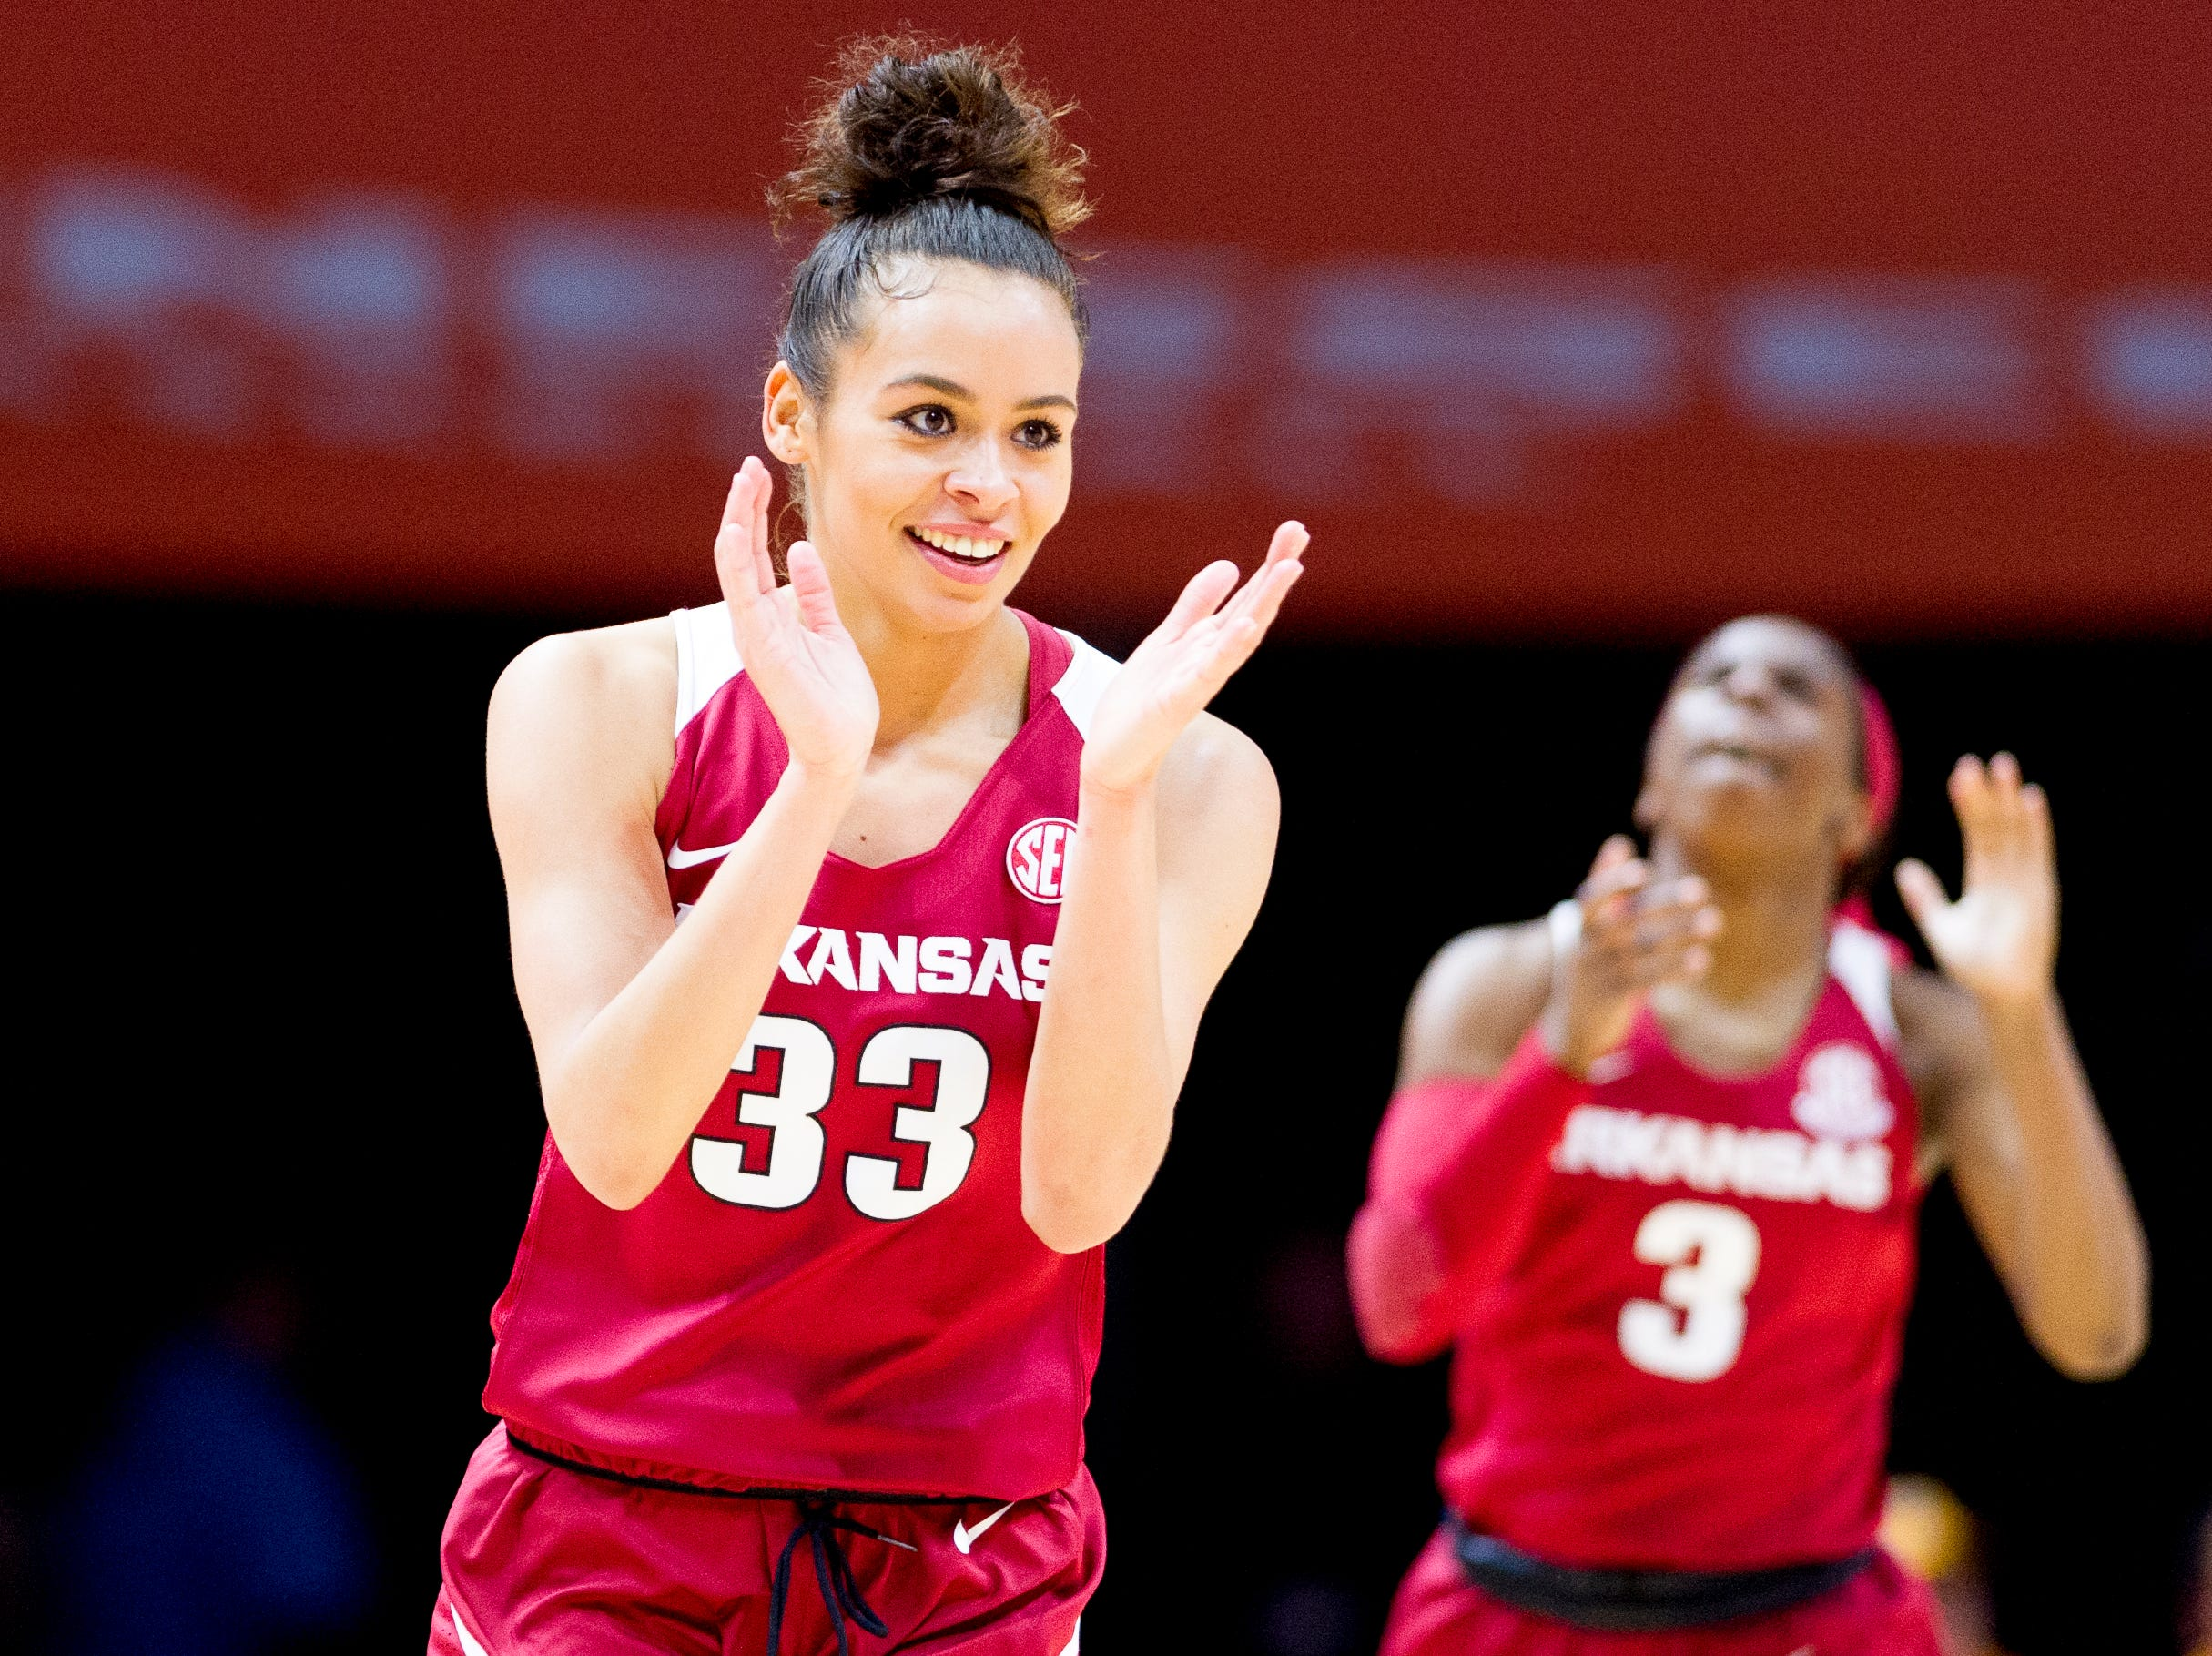 Arkansas guard Chelsea Dungee (33) celebrates after making a point as Arkansas guard Malica Monk (3) claps in the background during a game between Tennessee and Arkansas at Thompson-Boling Arena in , Tennessee on Monday, January 21, 2019.